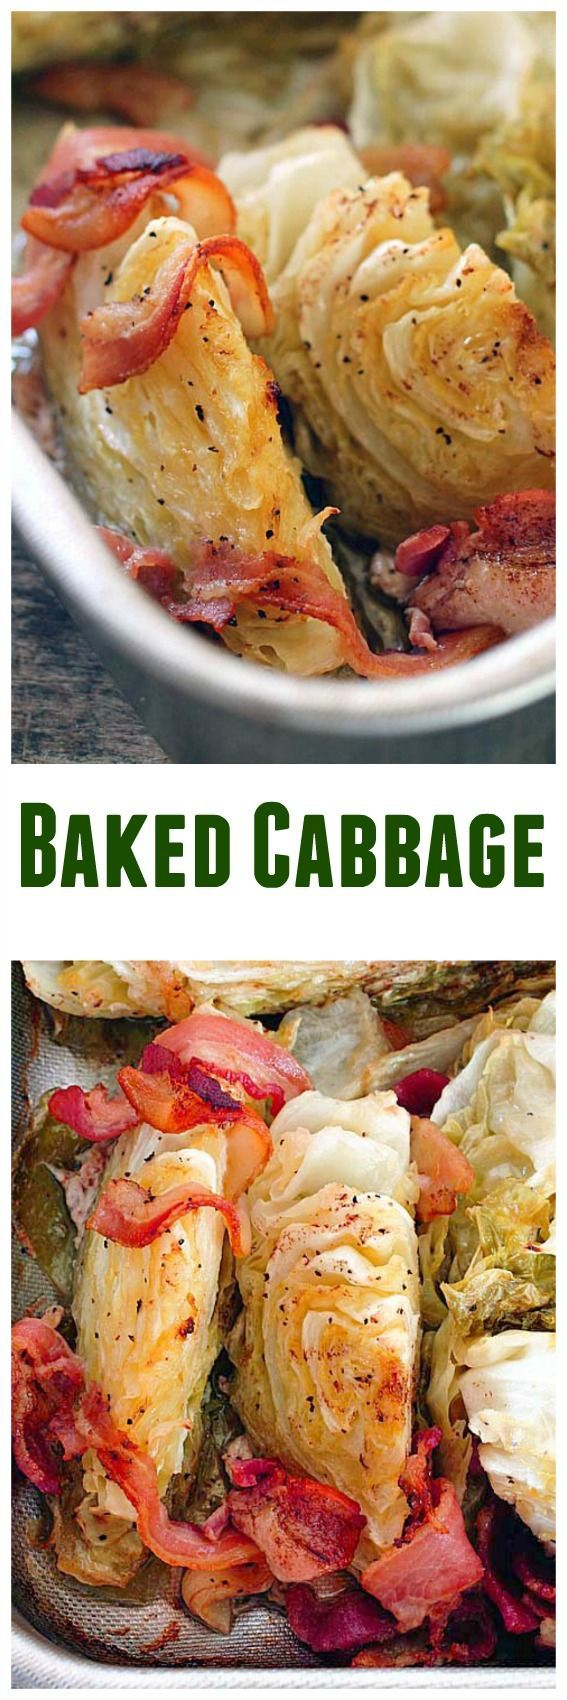 Baked Cabbage  Made In A Roasting Pan In The Oven This Is A Delicious Way